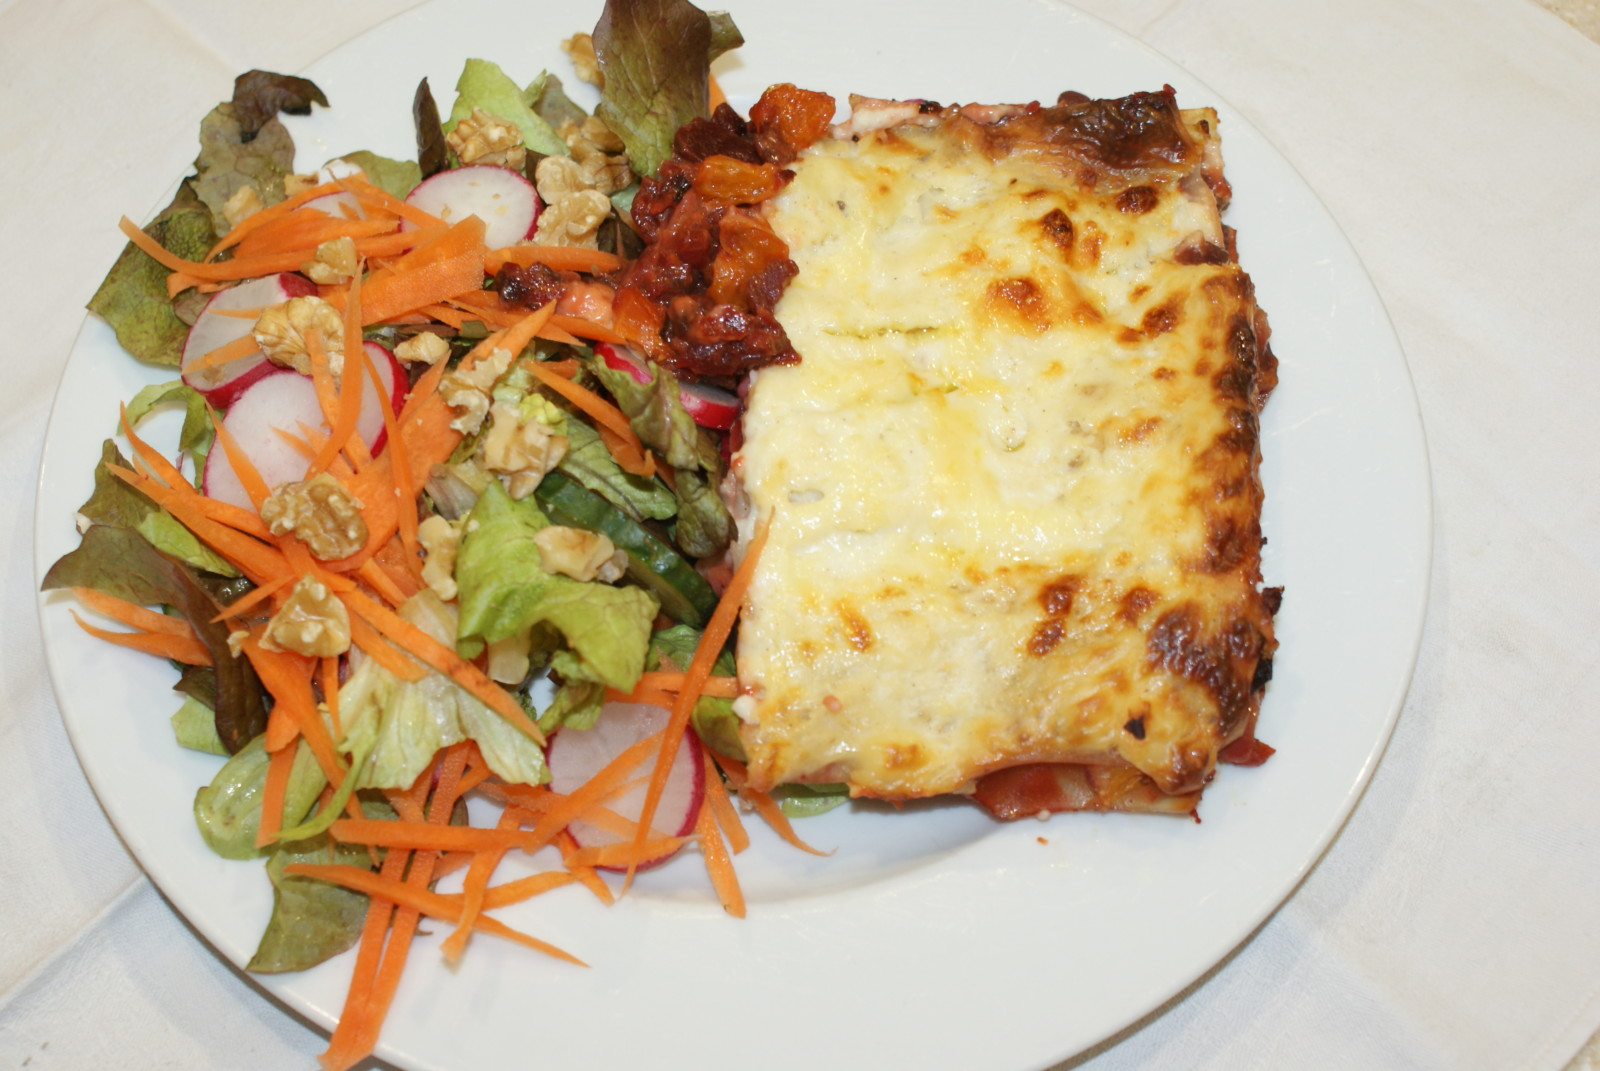 beetroot lasagna - vegetable lasagna